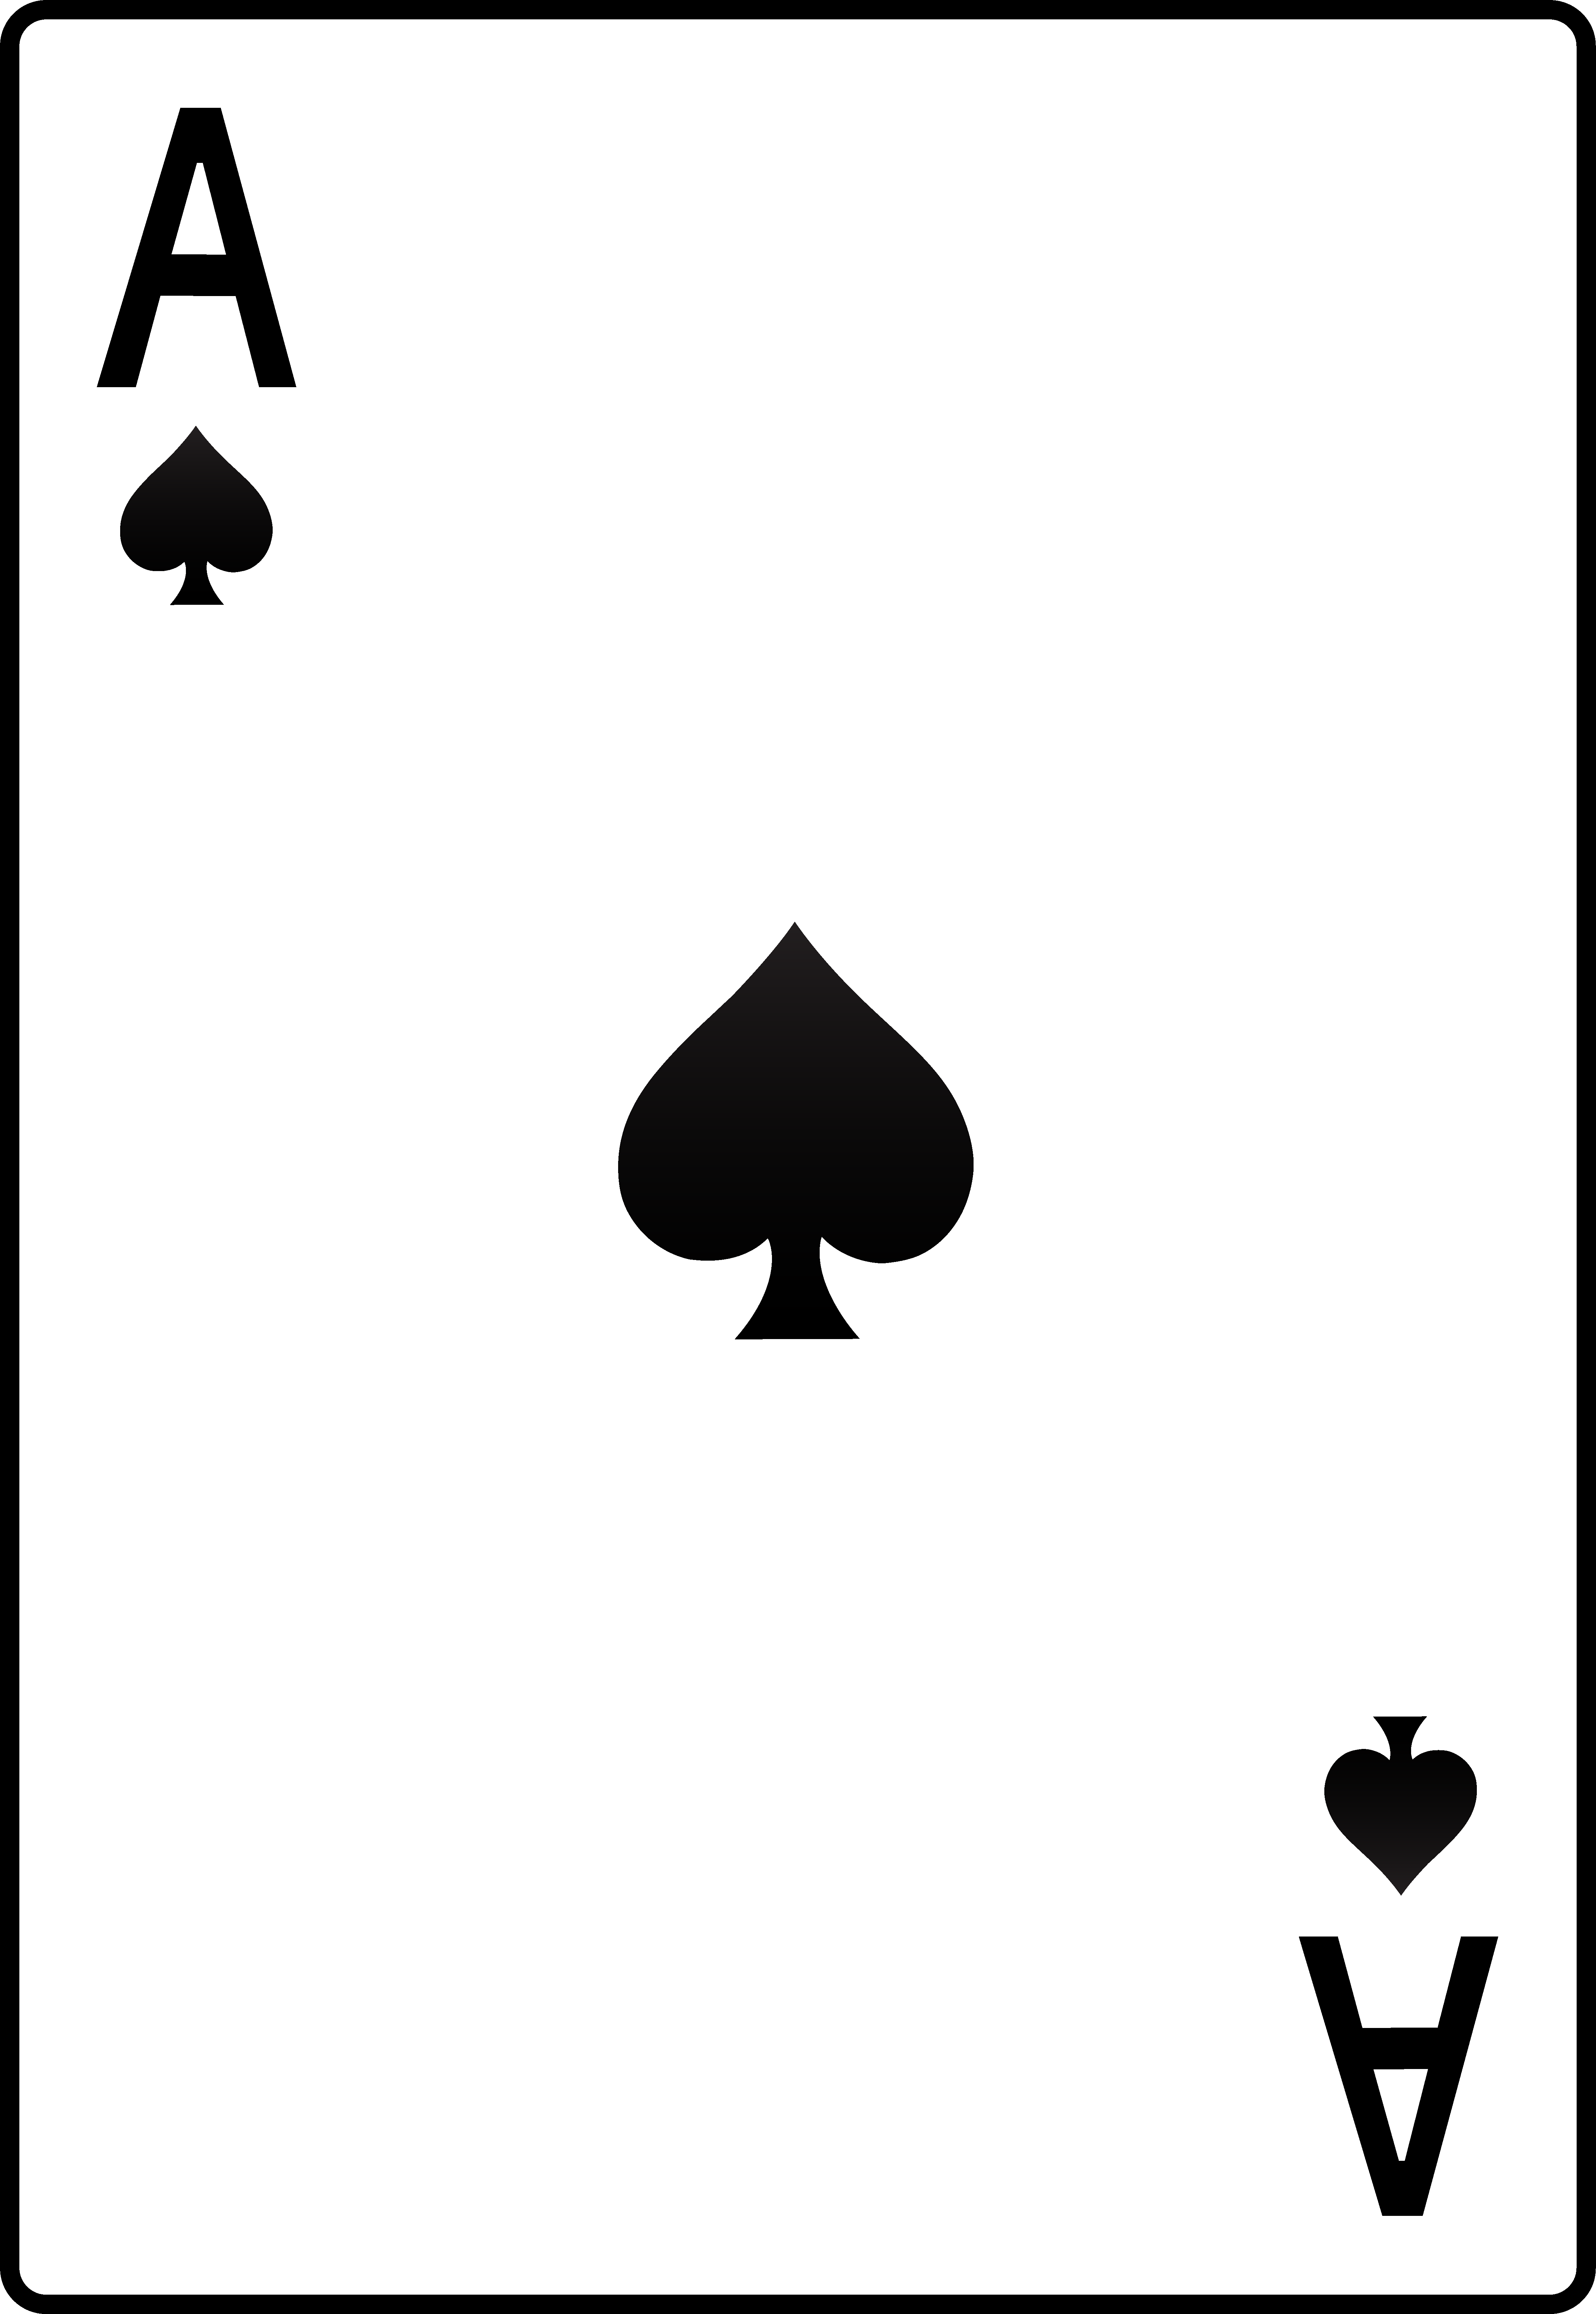 Ace card clipart picture black and white Ace of Spades Playing Card - Free Clip Art picture black and white